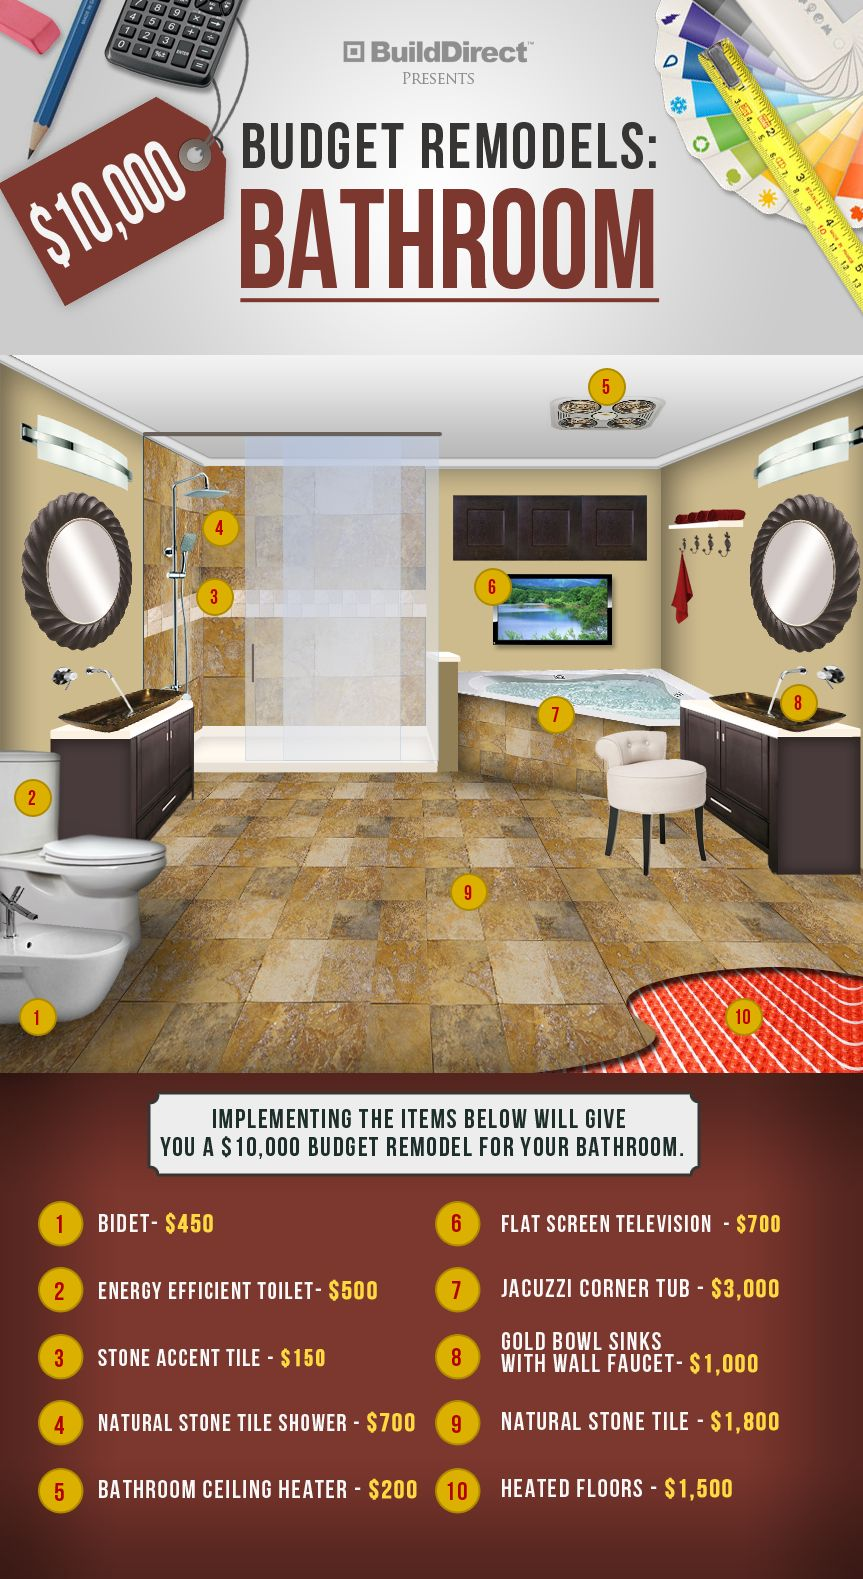 Bathroom remodel 10 000 home decor budget bathroom - Bathroom renovations under 10000 ...